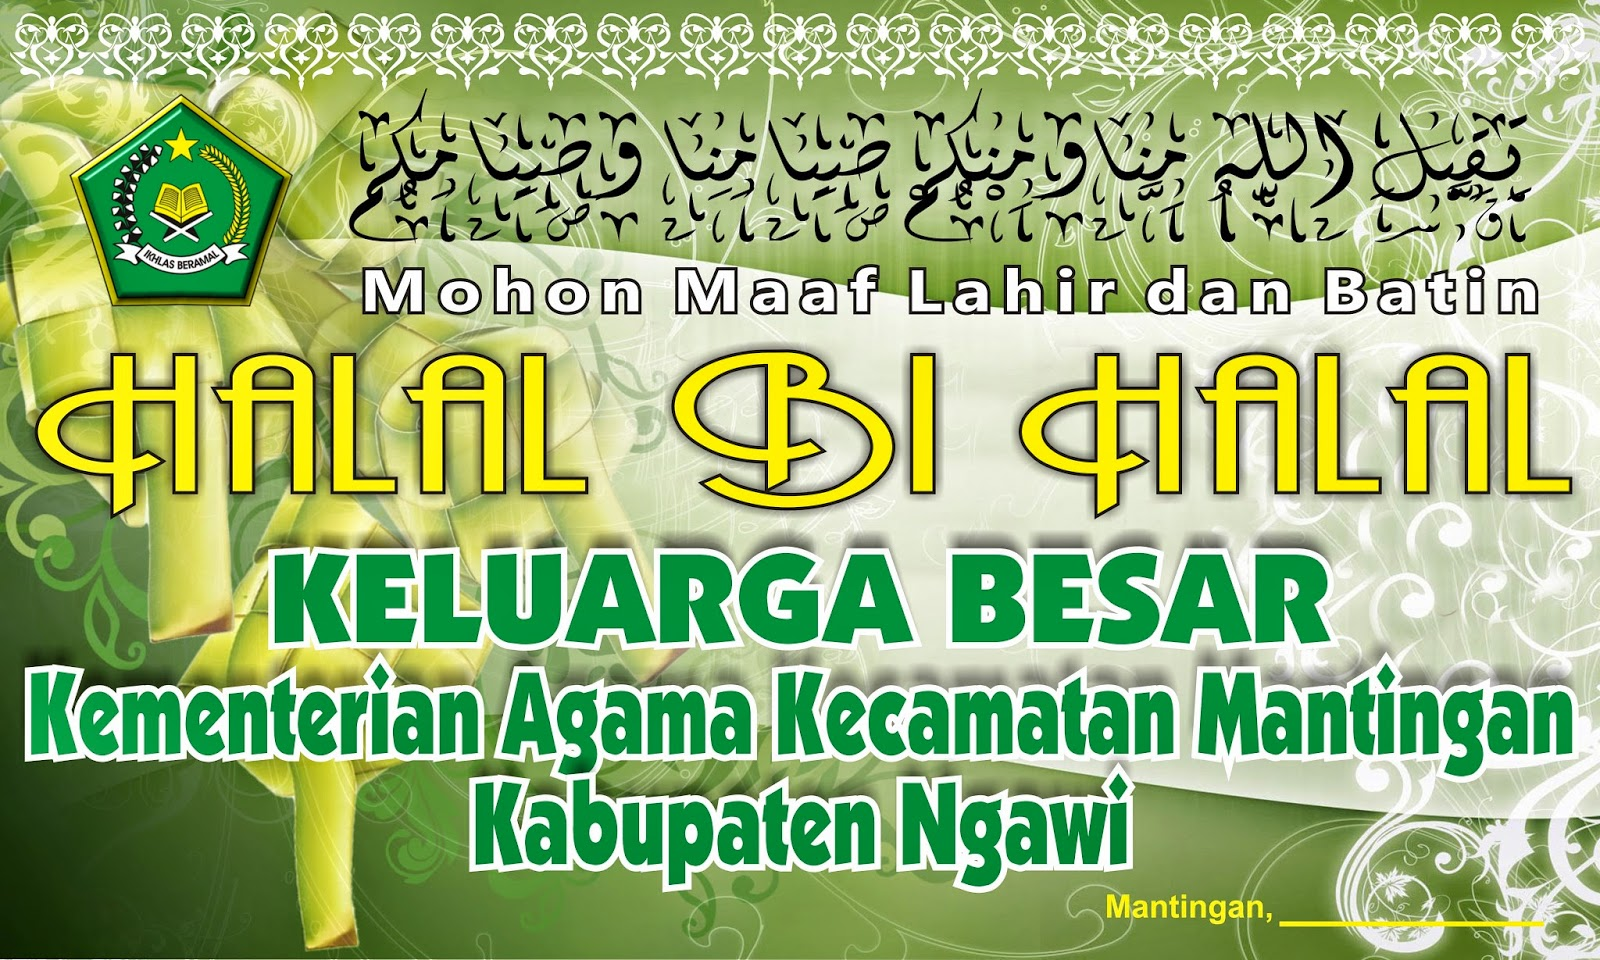 Download Background Halal Bi Halal Kemenag Pesantren Temulus